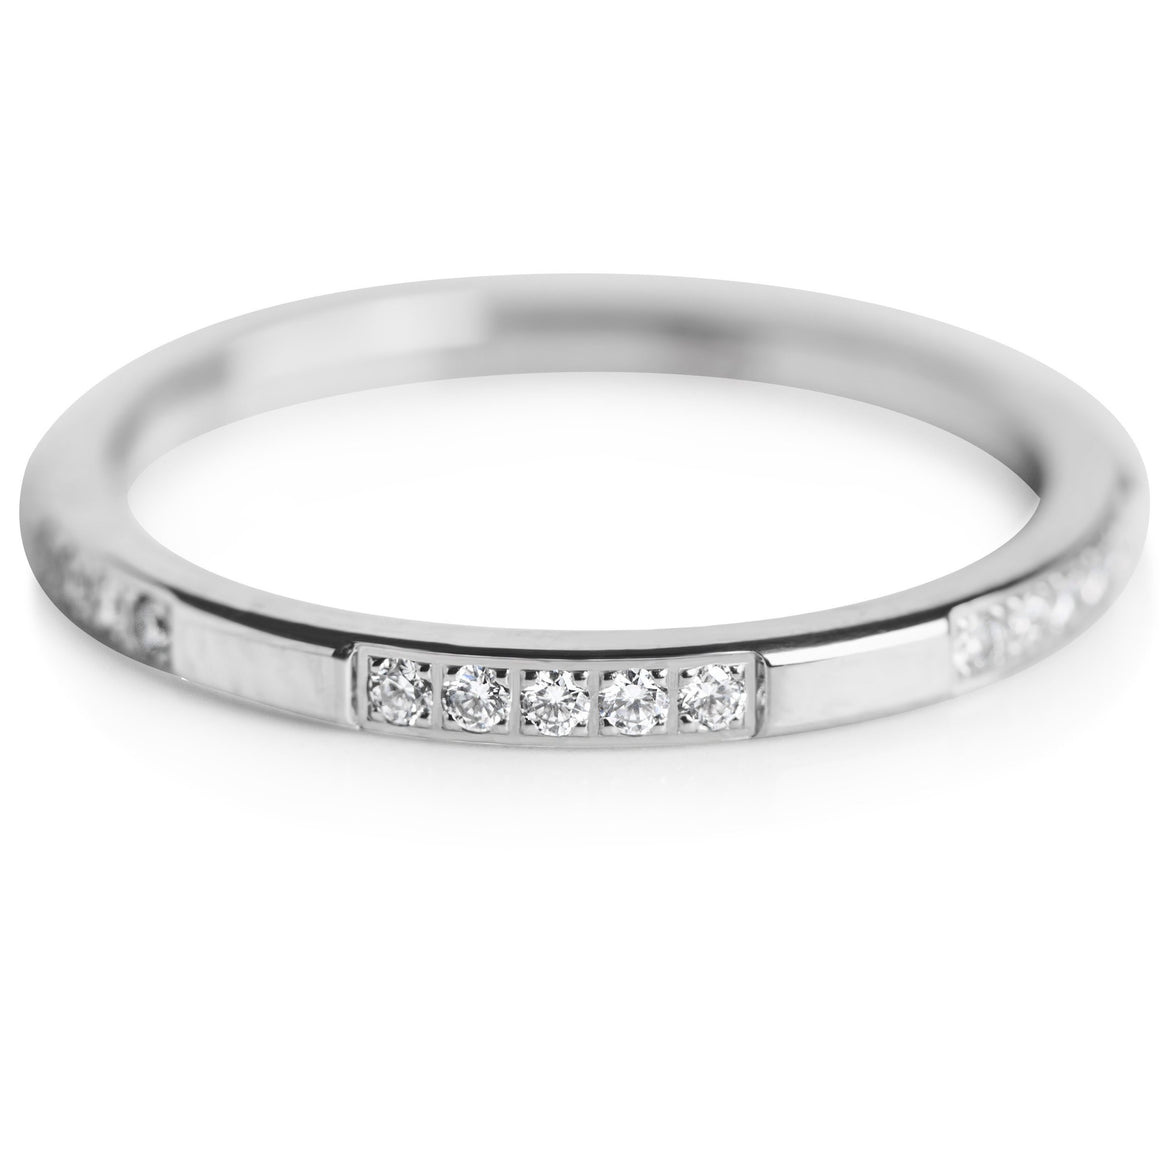 machine set diamonds with a white gold band